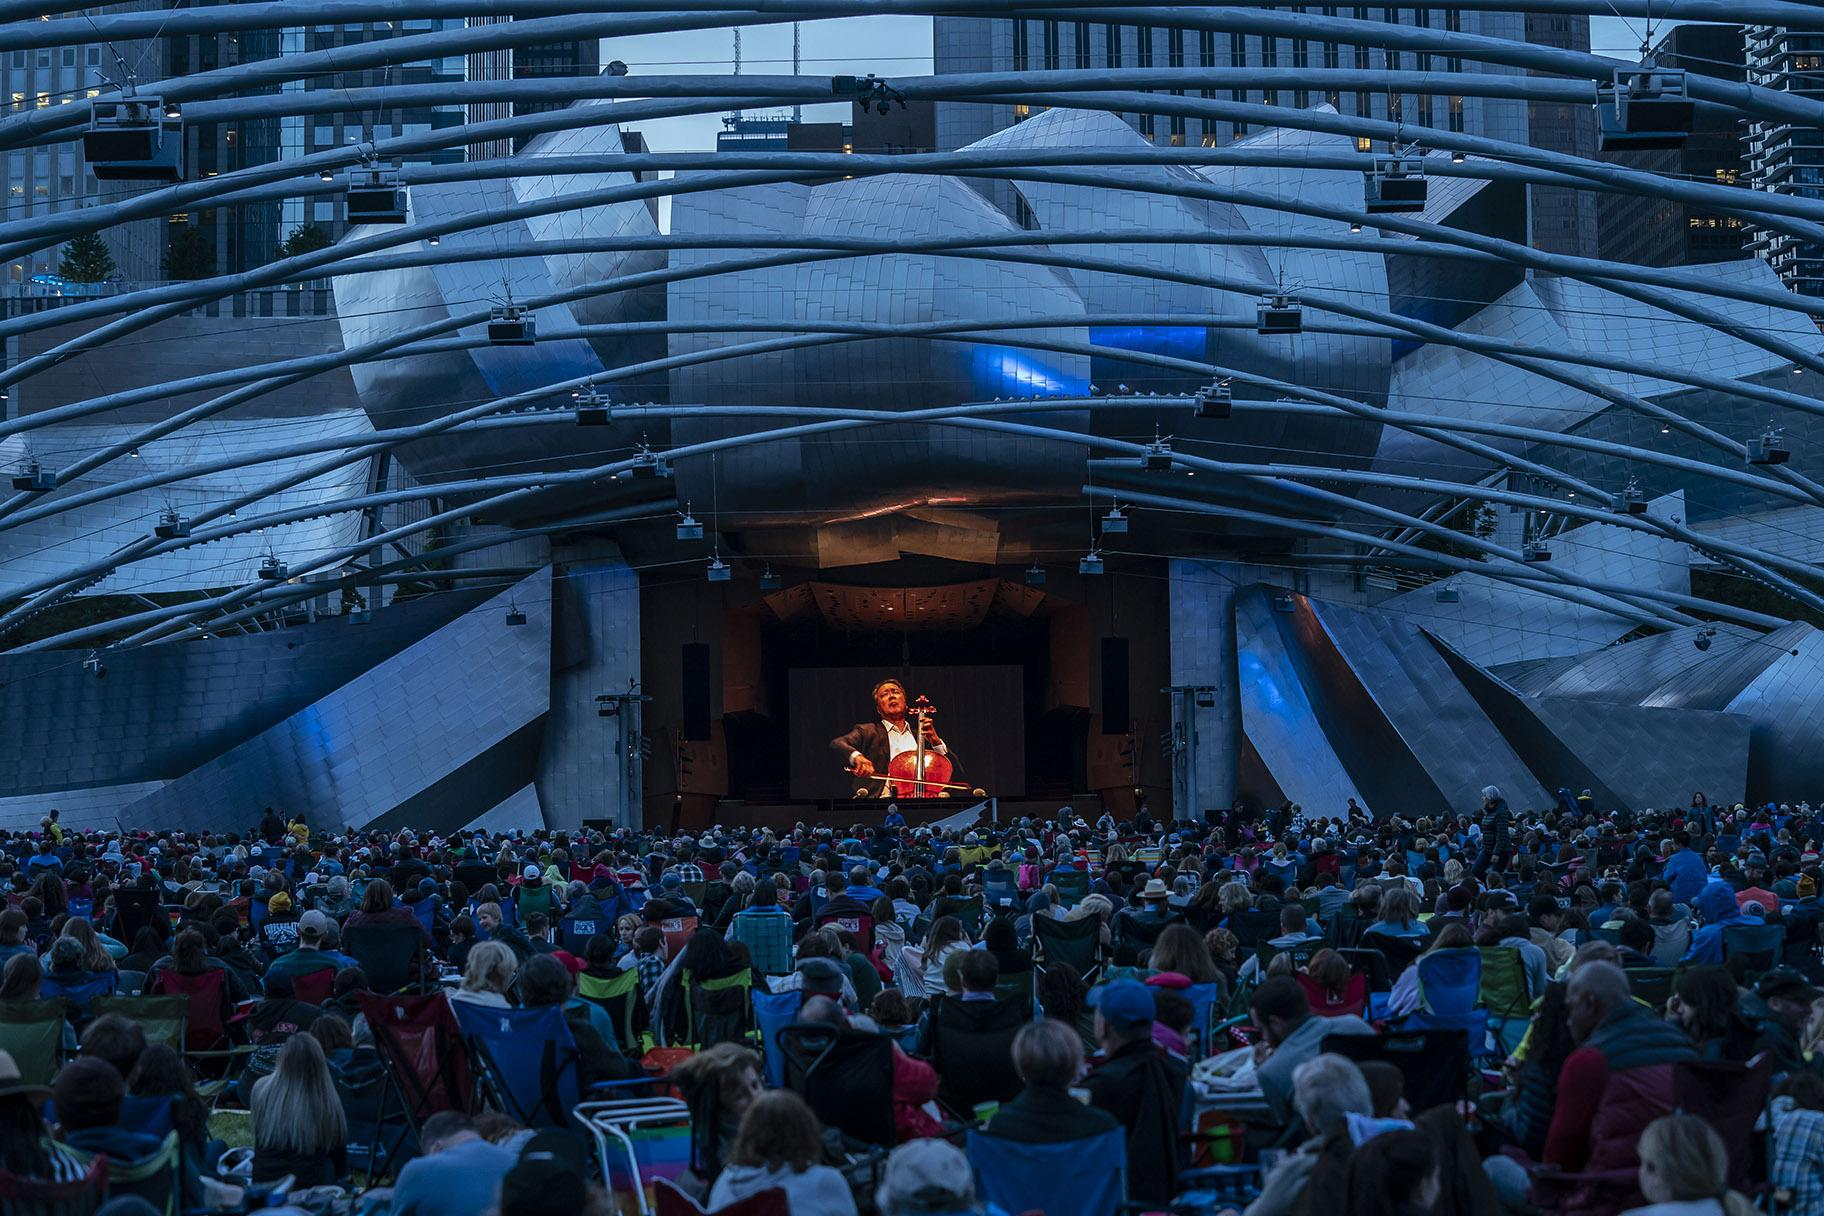 Yo-Yo Ma performs at Jay Pritzker Pavilion in Millennium Park as part of his 36-concert Bach Project on June 20, 2019. (Credit: Todd Rosenberg)